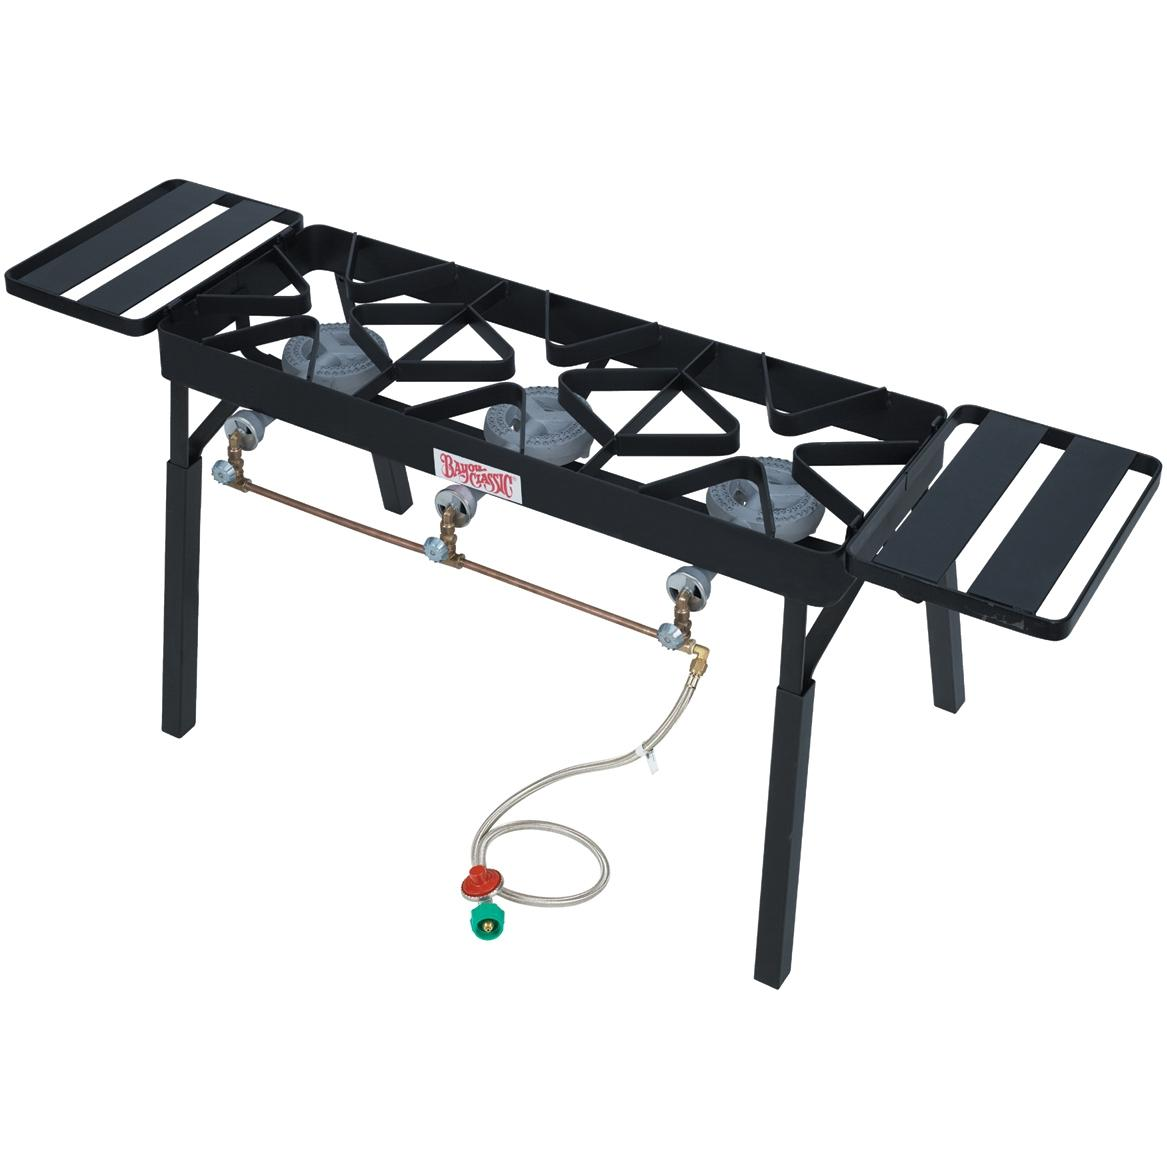 Bayou Classic Stoves With Low Pressure Gas Burners Black Triple Outdoor Stove